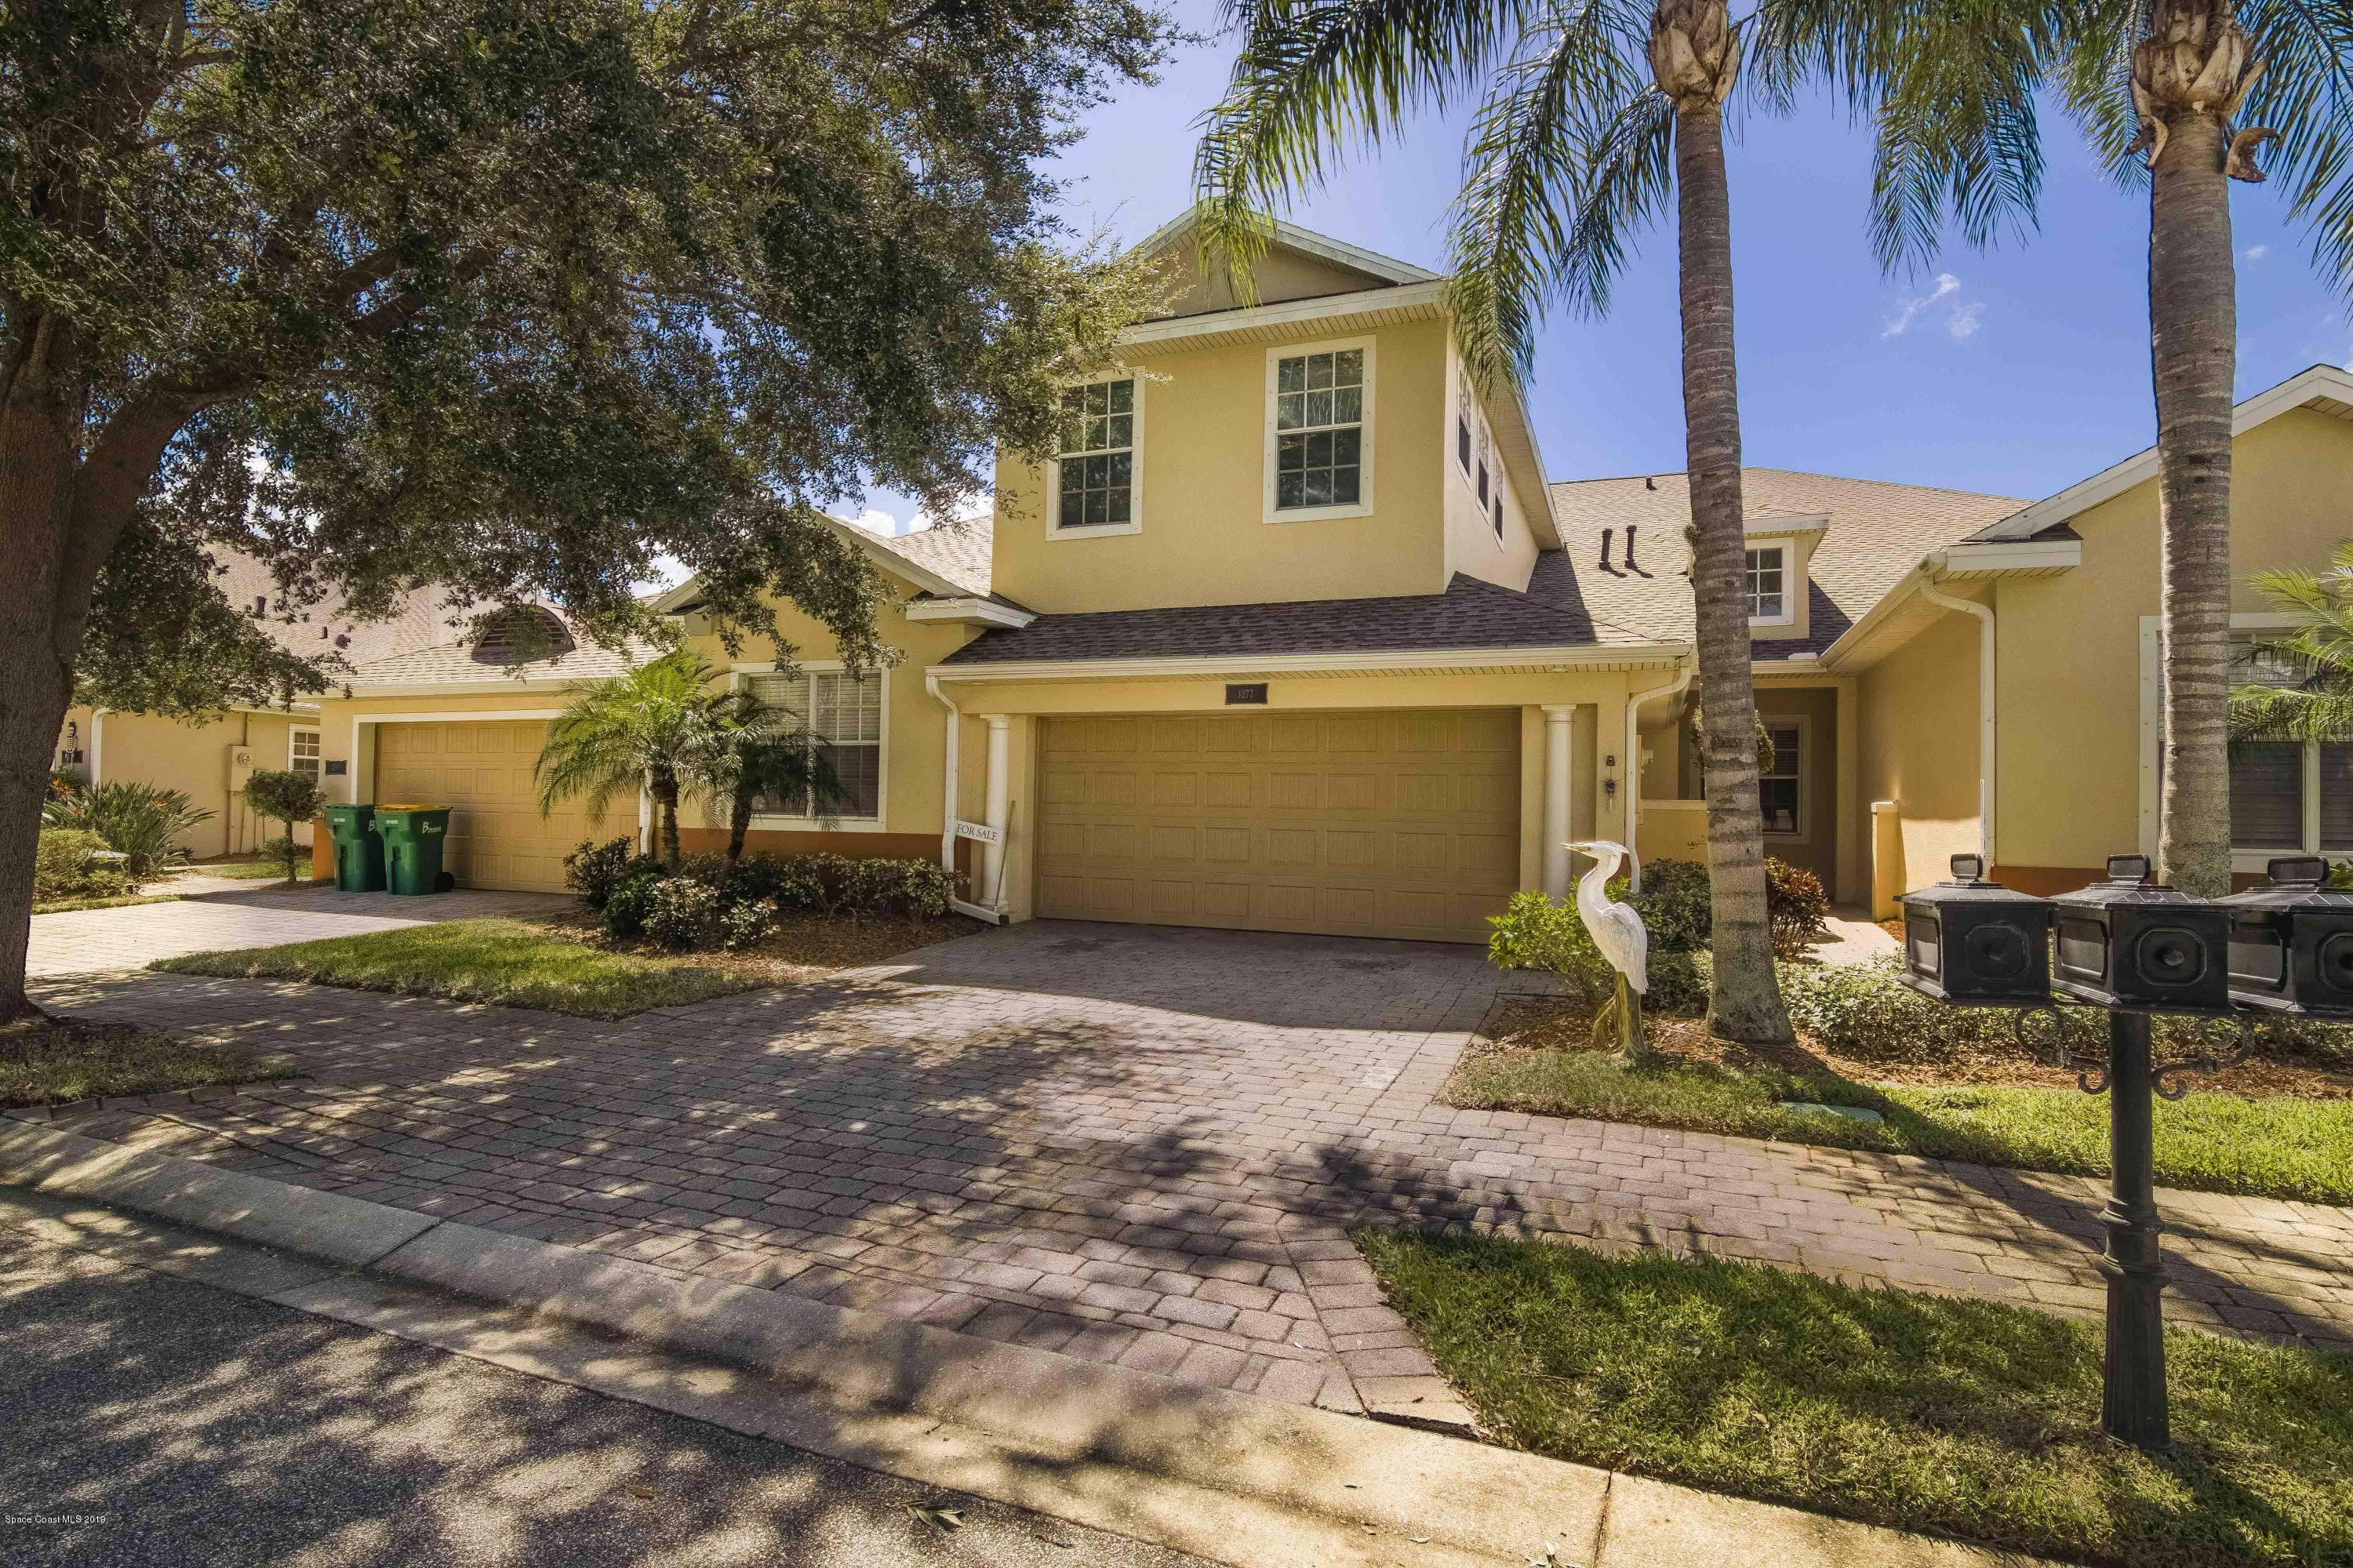 Single Family Homes for Sale at 1277 Ballinton Melbourne, Florida 32940 United States